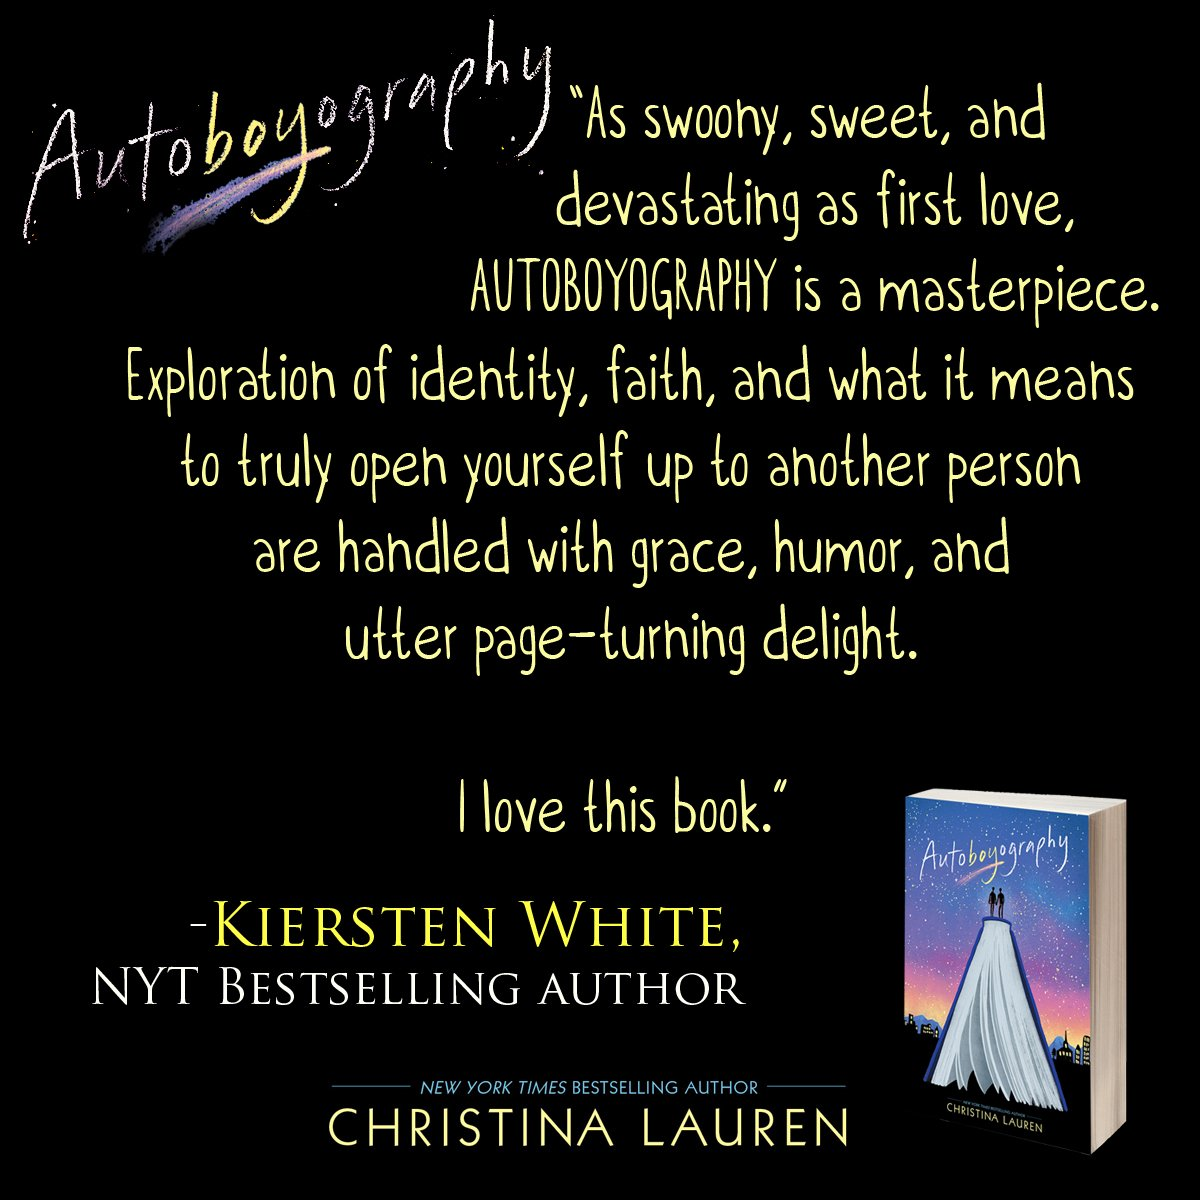 We Love This Quote From Kierstenwhite